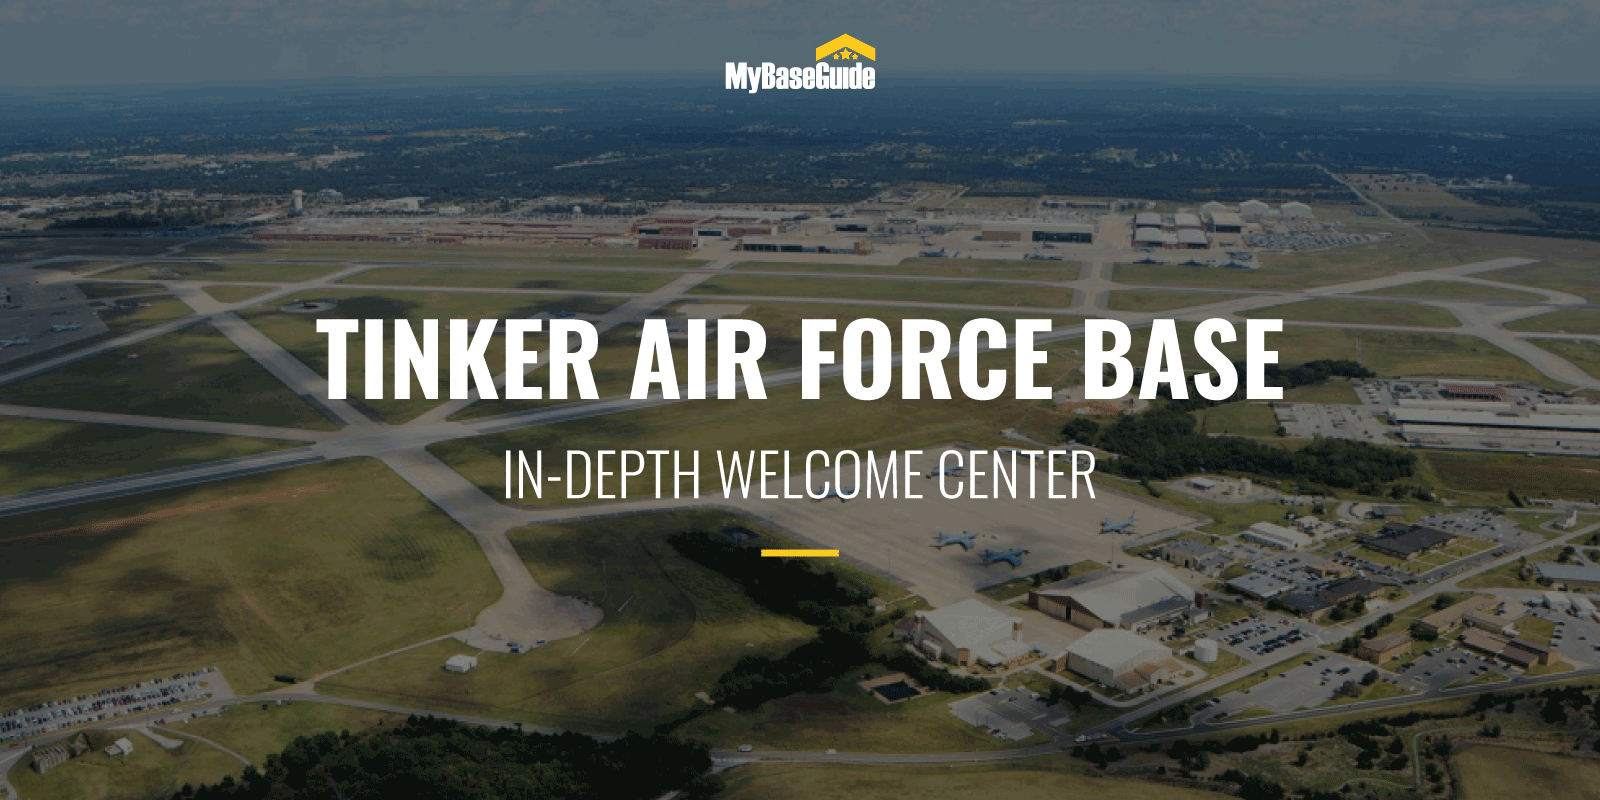 Tinker Air Force Base: In-Depth Welcome Center